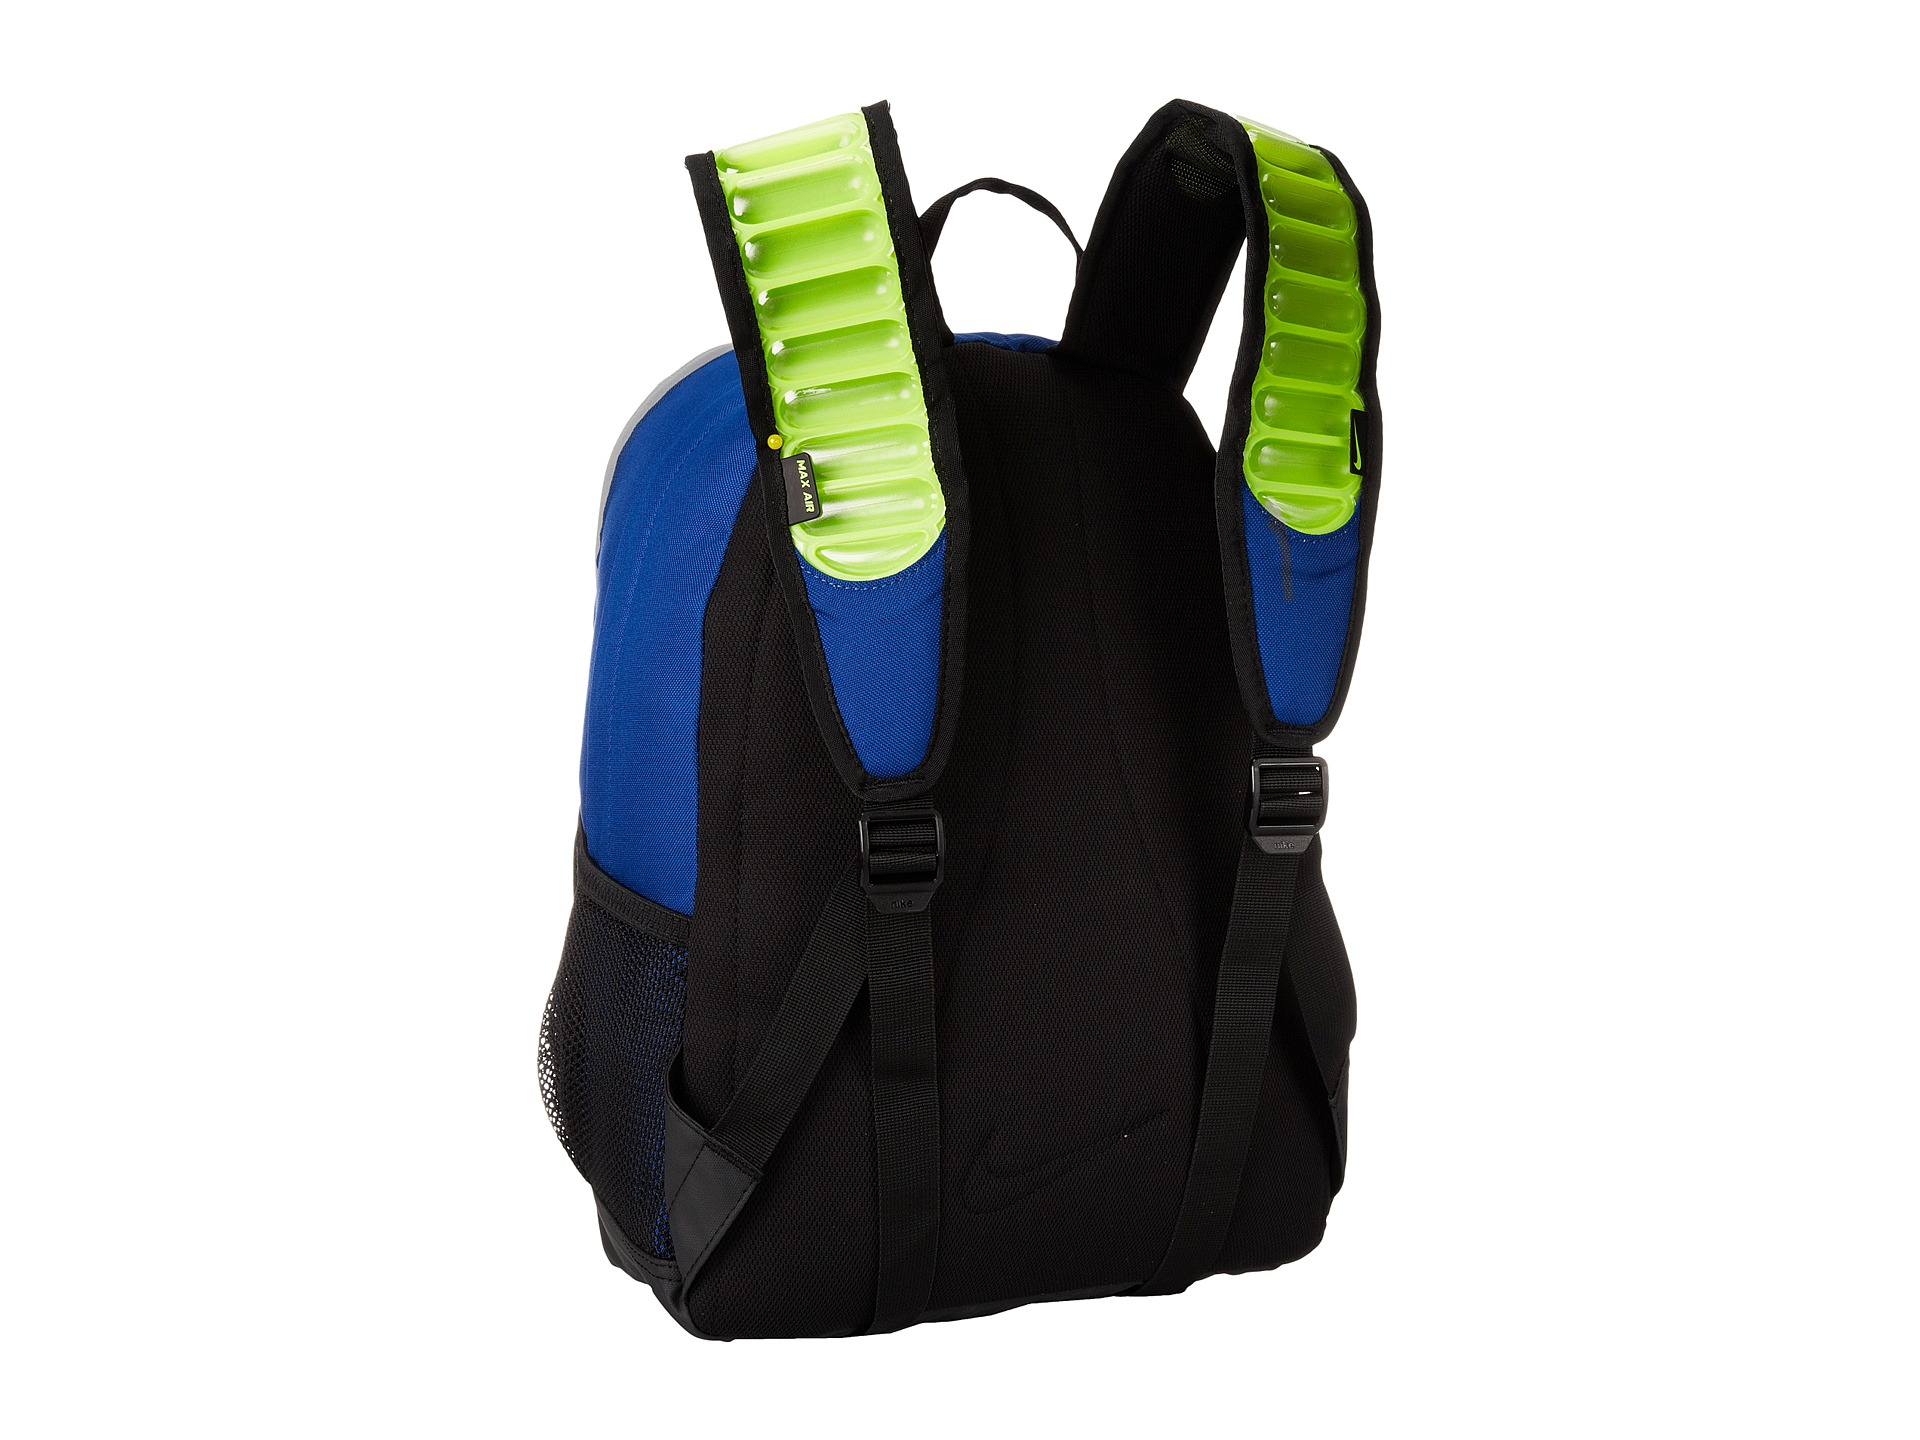 787c7763abe3 Lyst - Nike Max Air Team Training Small Backpack (Young Athletes) in ...